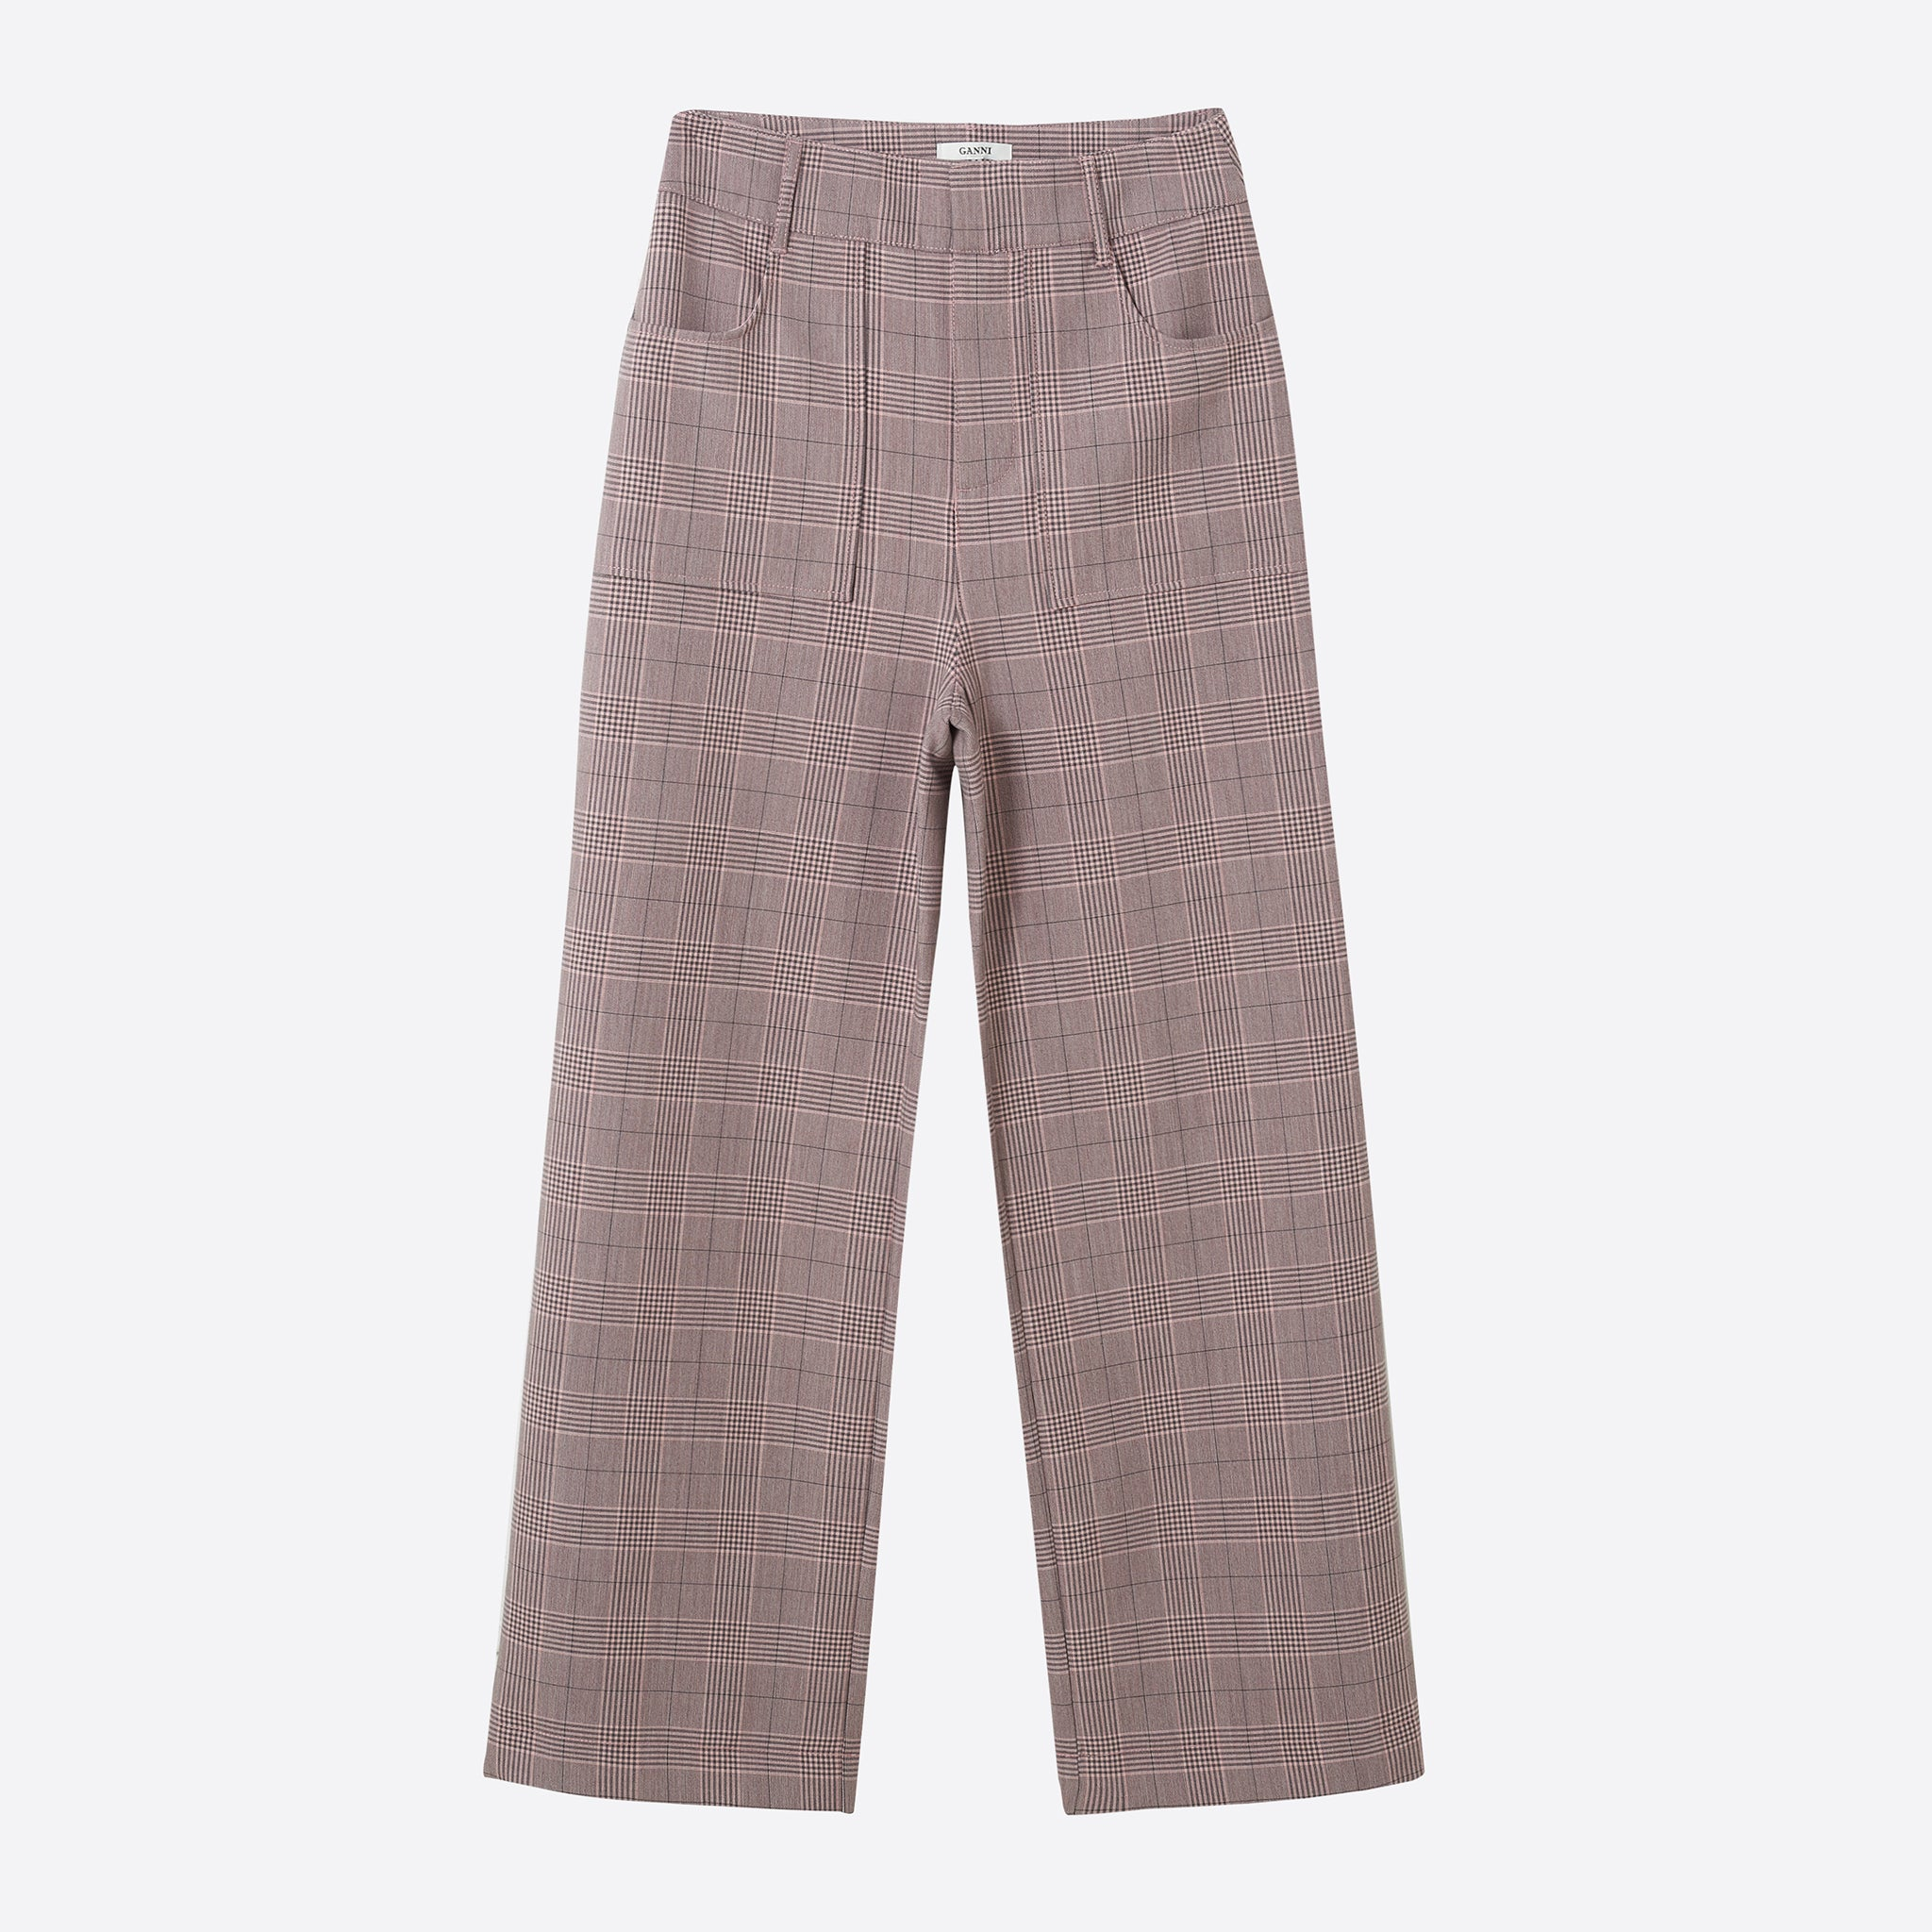 Ganni Hewitt Wide Leg Suiting Pants in Silver Pink